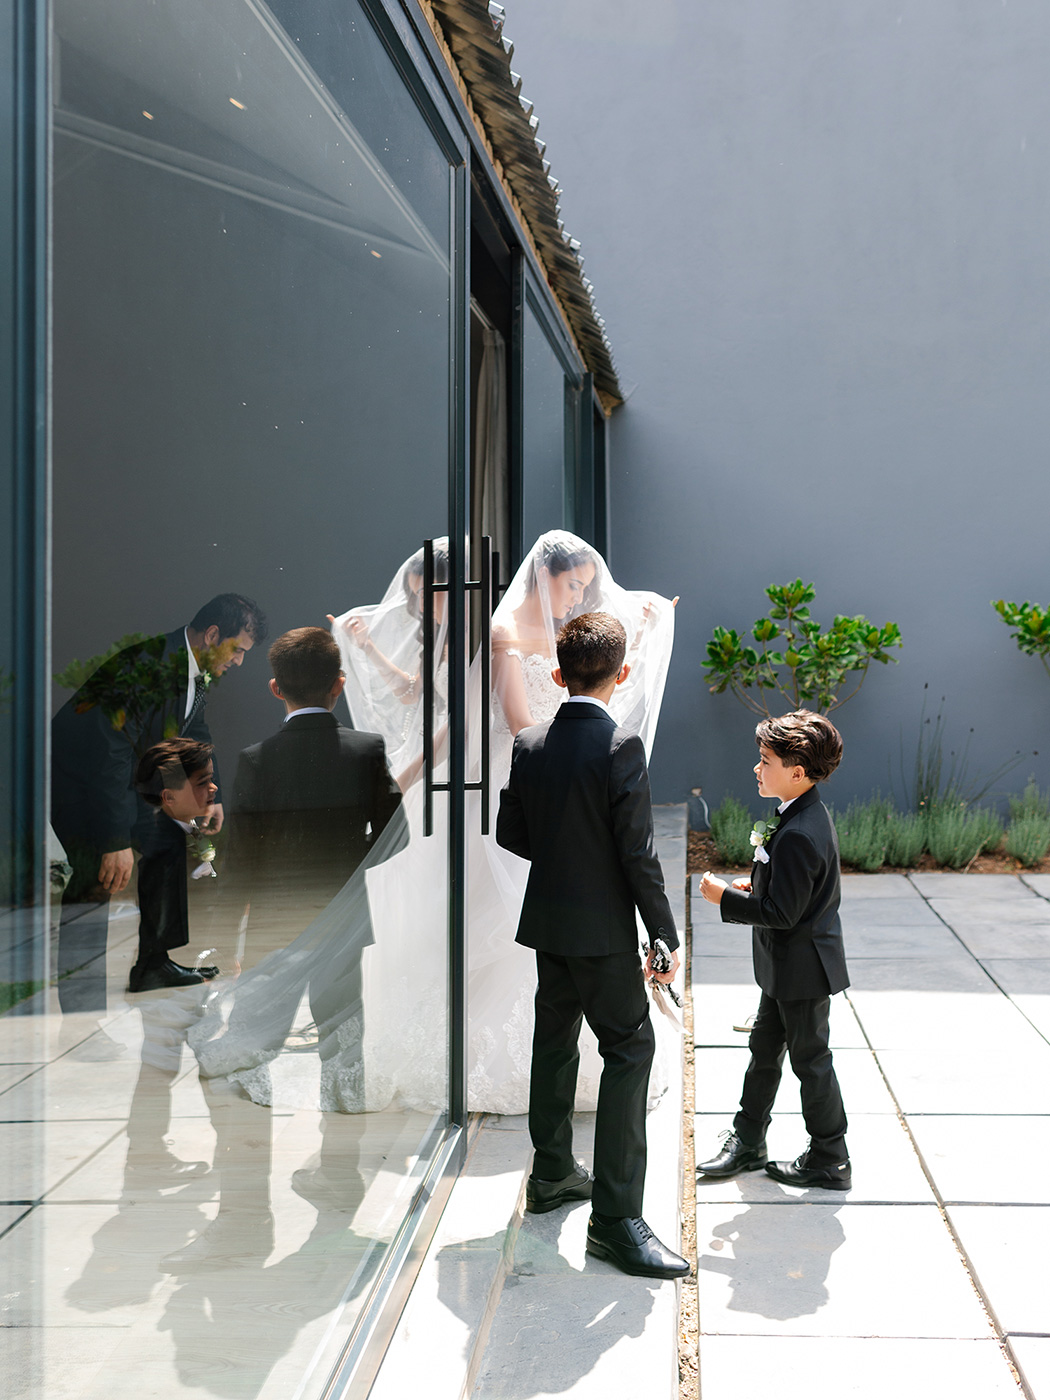 Bride Entrance | Rensche Mari Photography